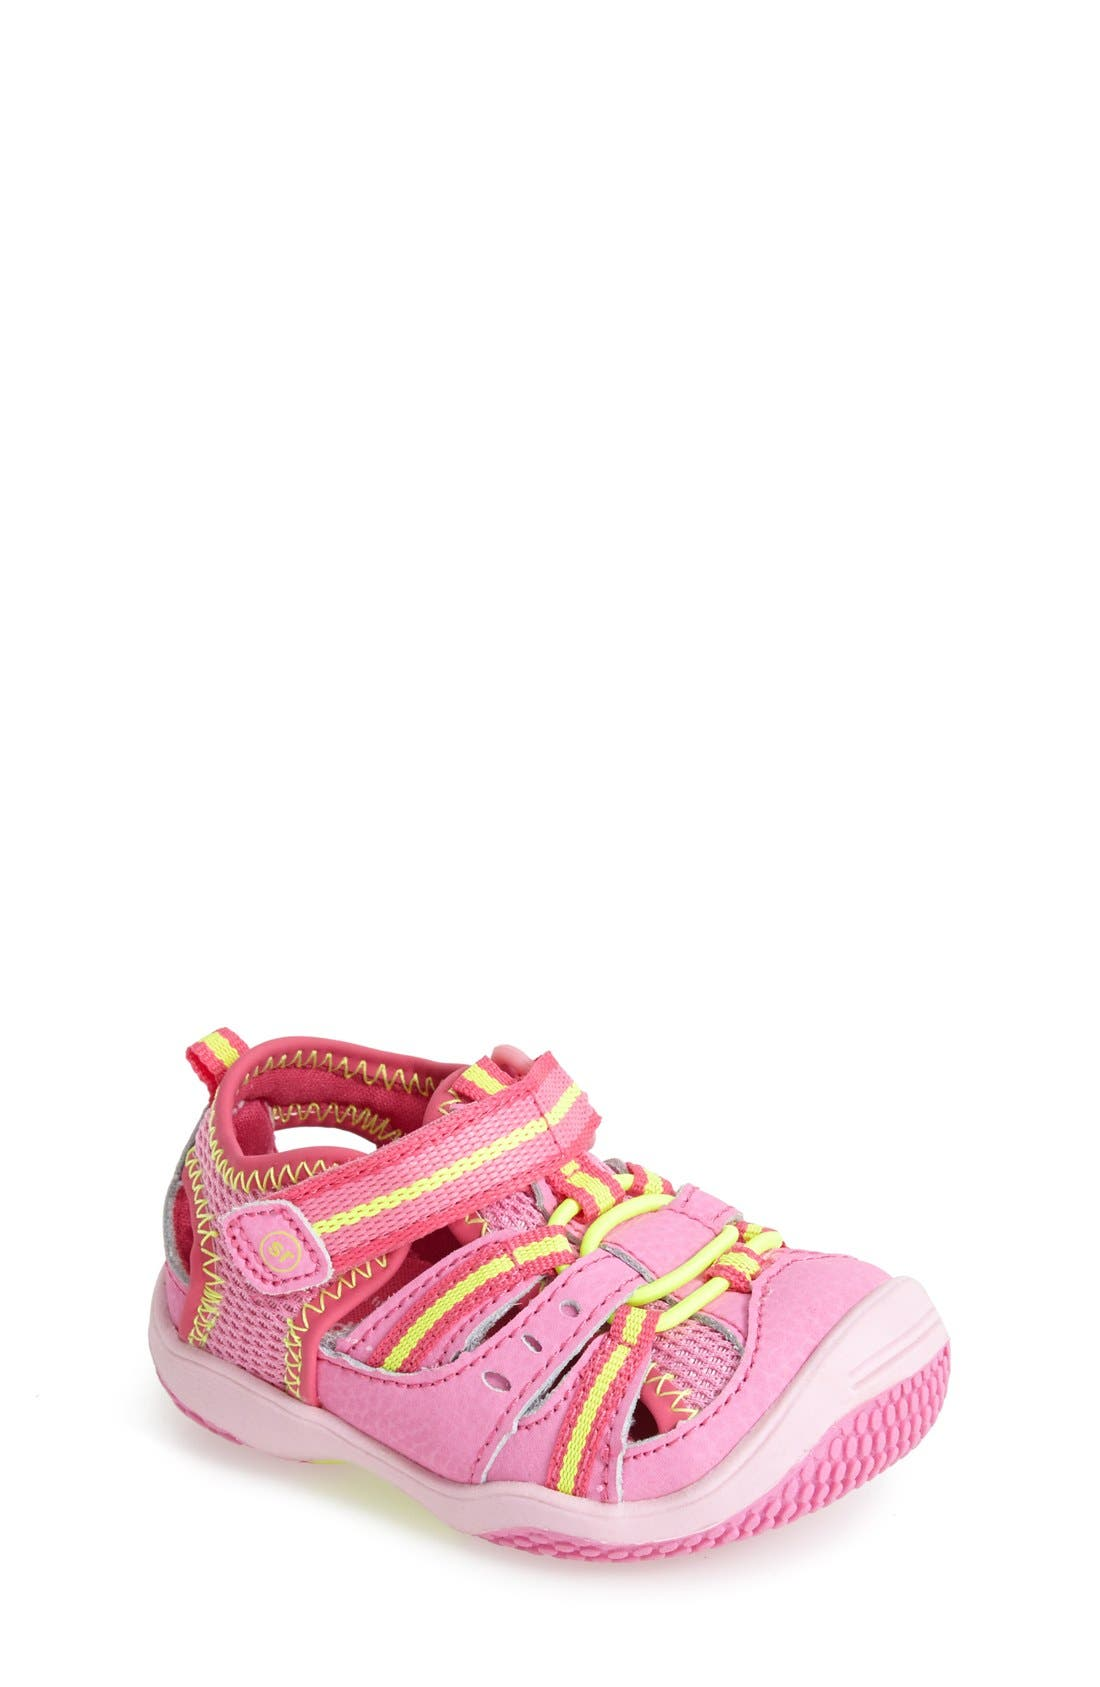 'Baby Petra' Sandal,                         Main,                         color, 650